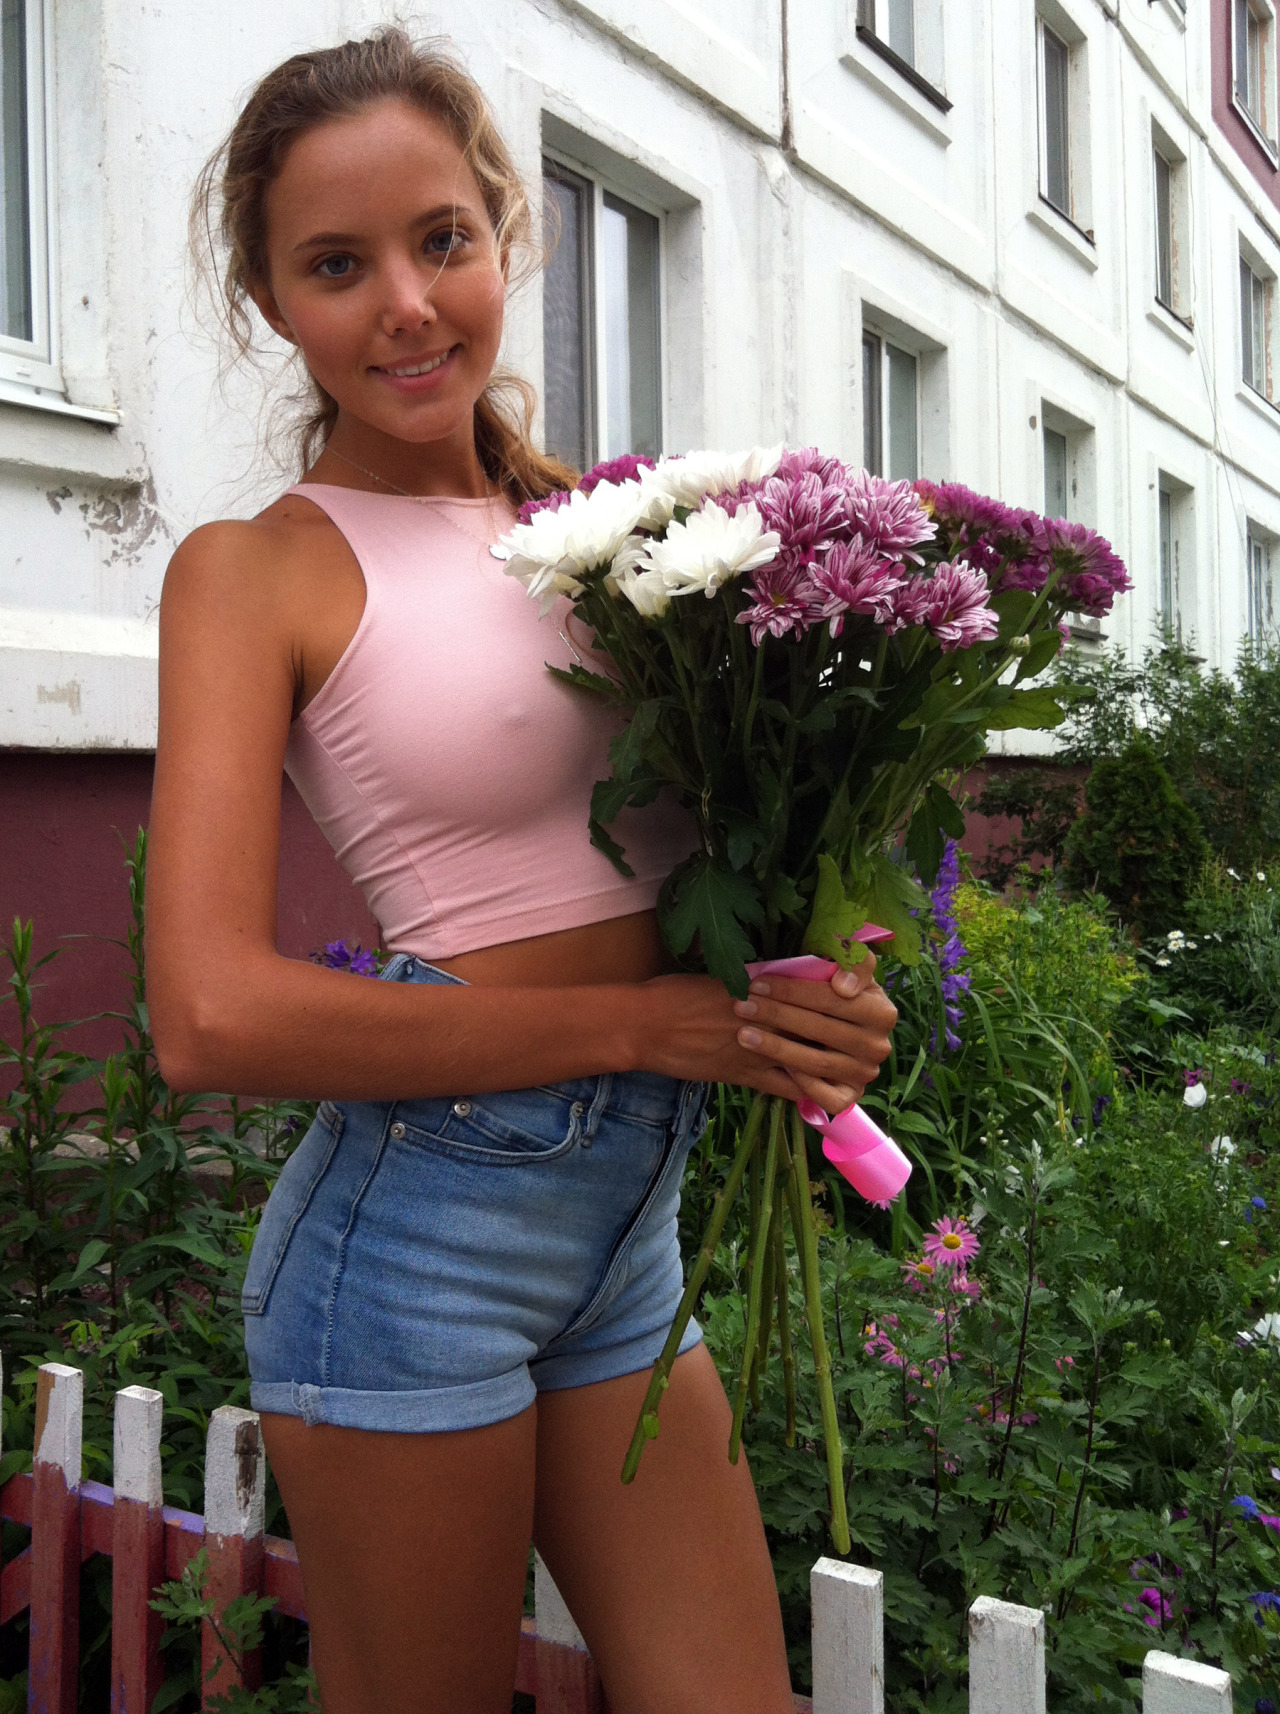 femme adultere baisee free videos watch download